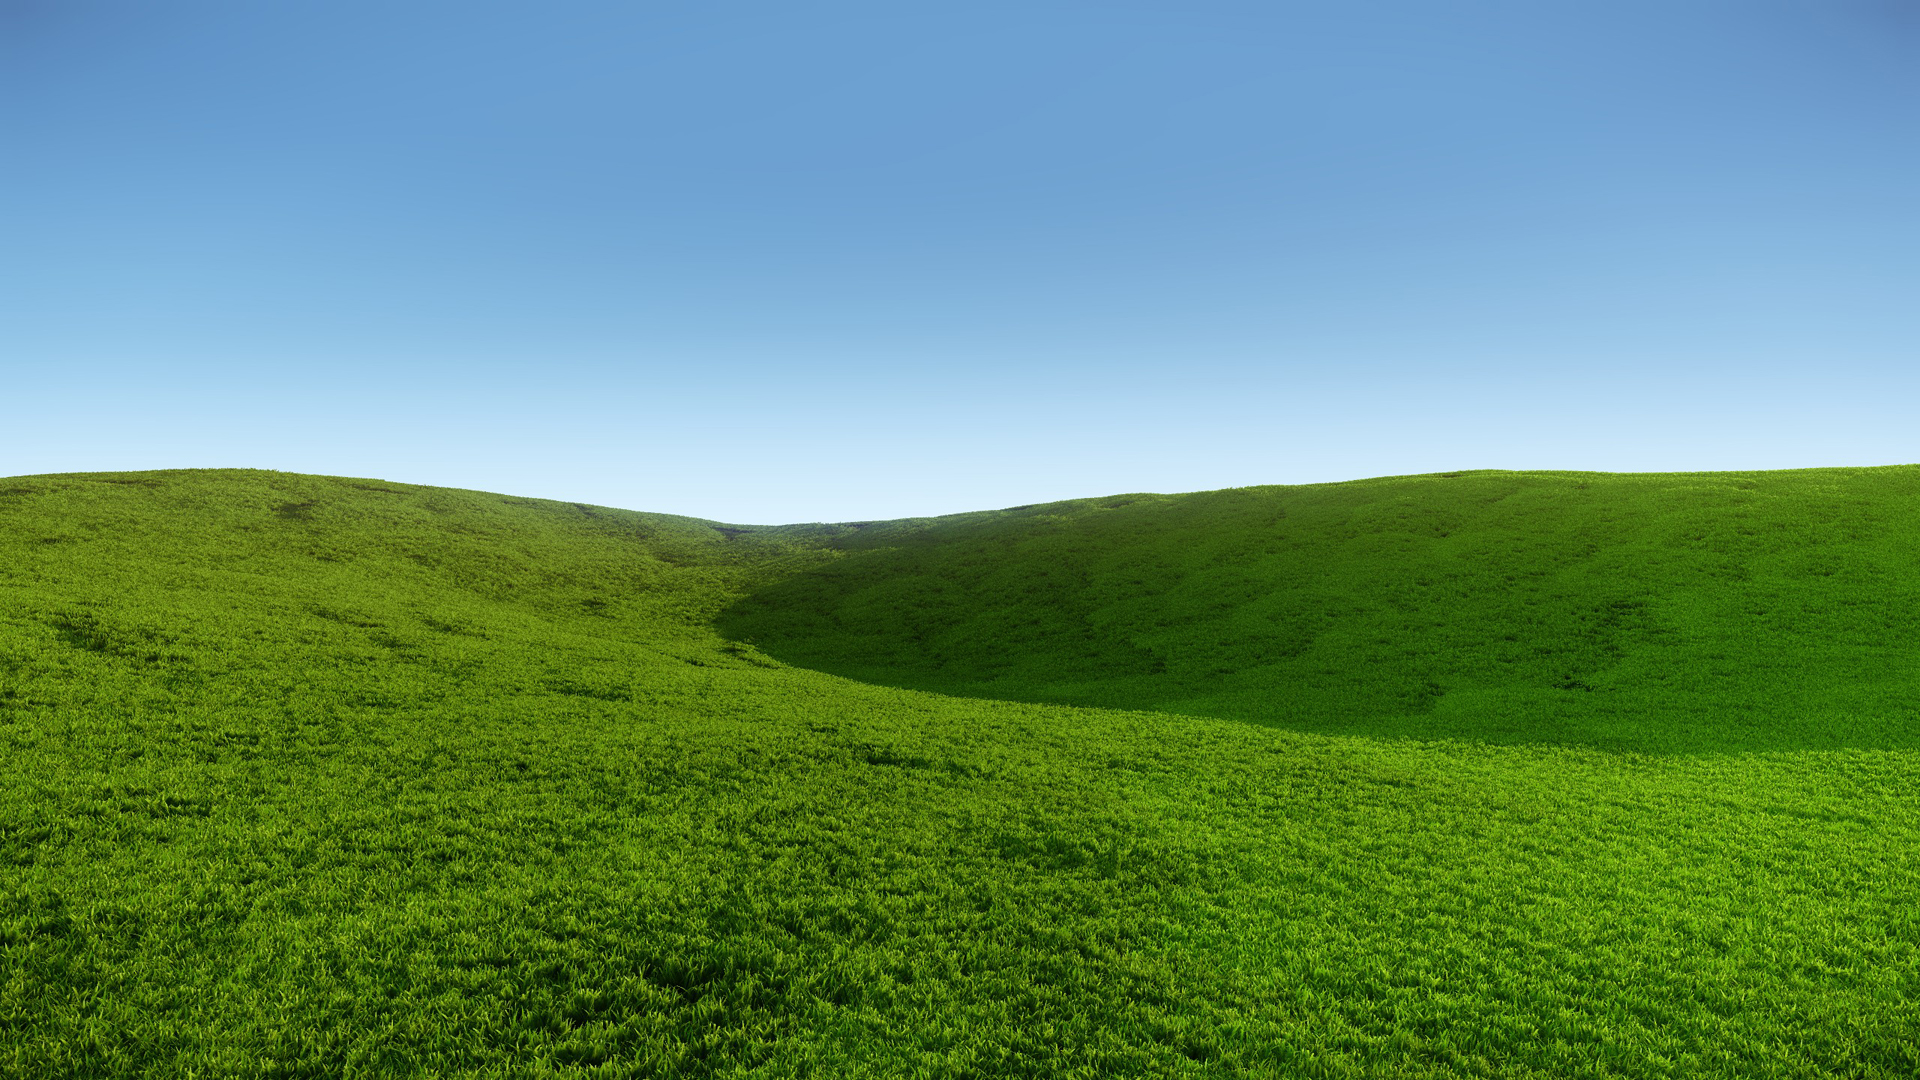 Islamic Wallpaper Hd 3d Grass Field Pictures Hd Wallpapers Pulse